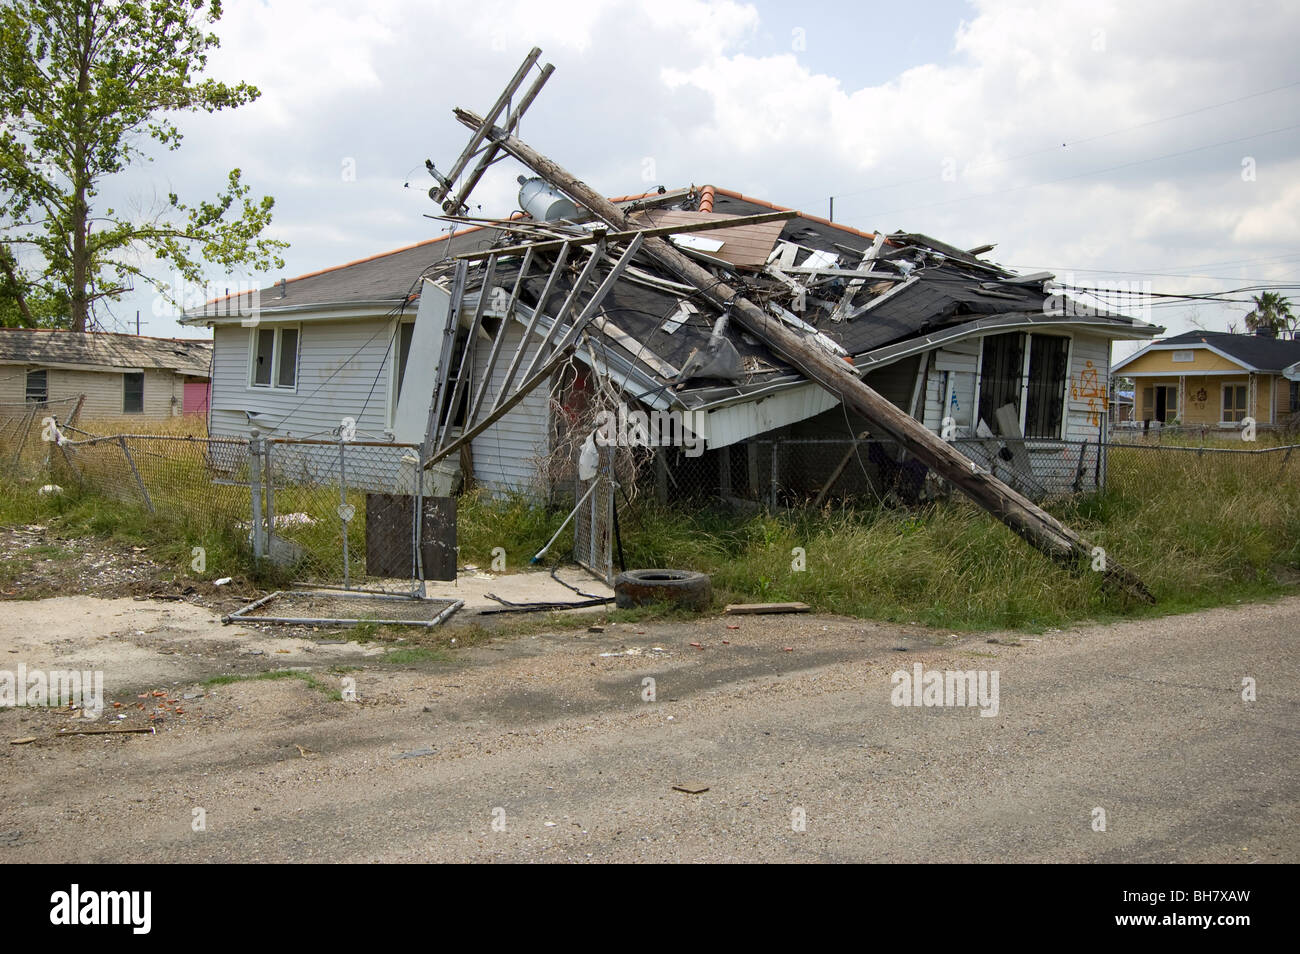 A power pole fell on top of a home in the Lower Ninth Ward, New Orleans. - Stock Image